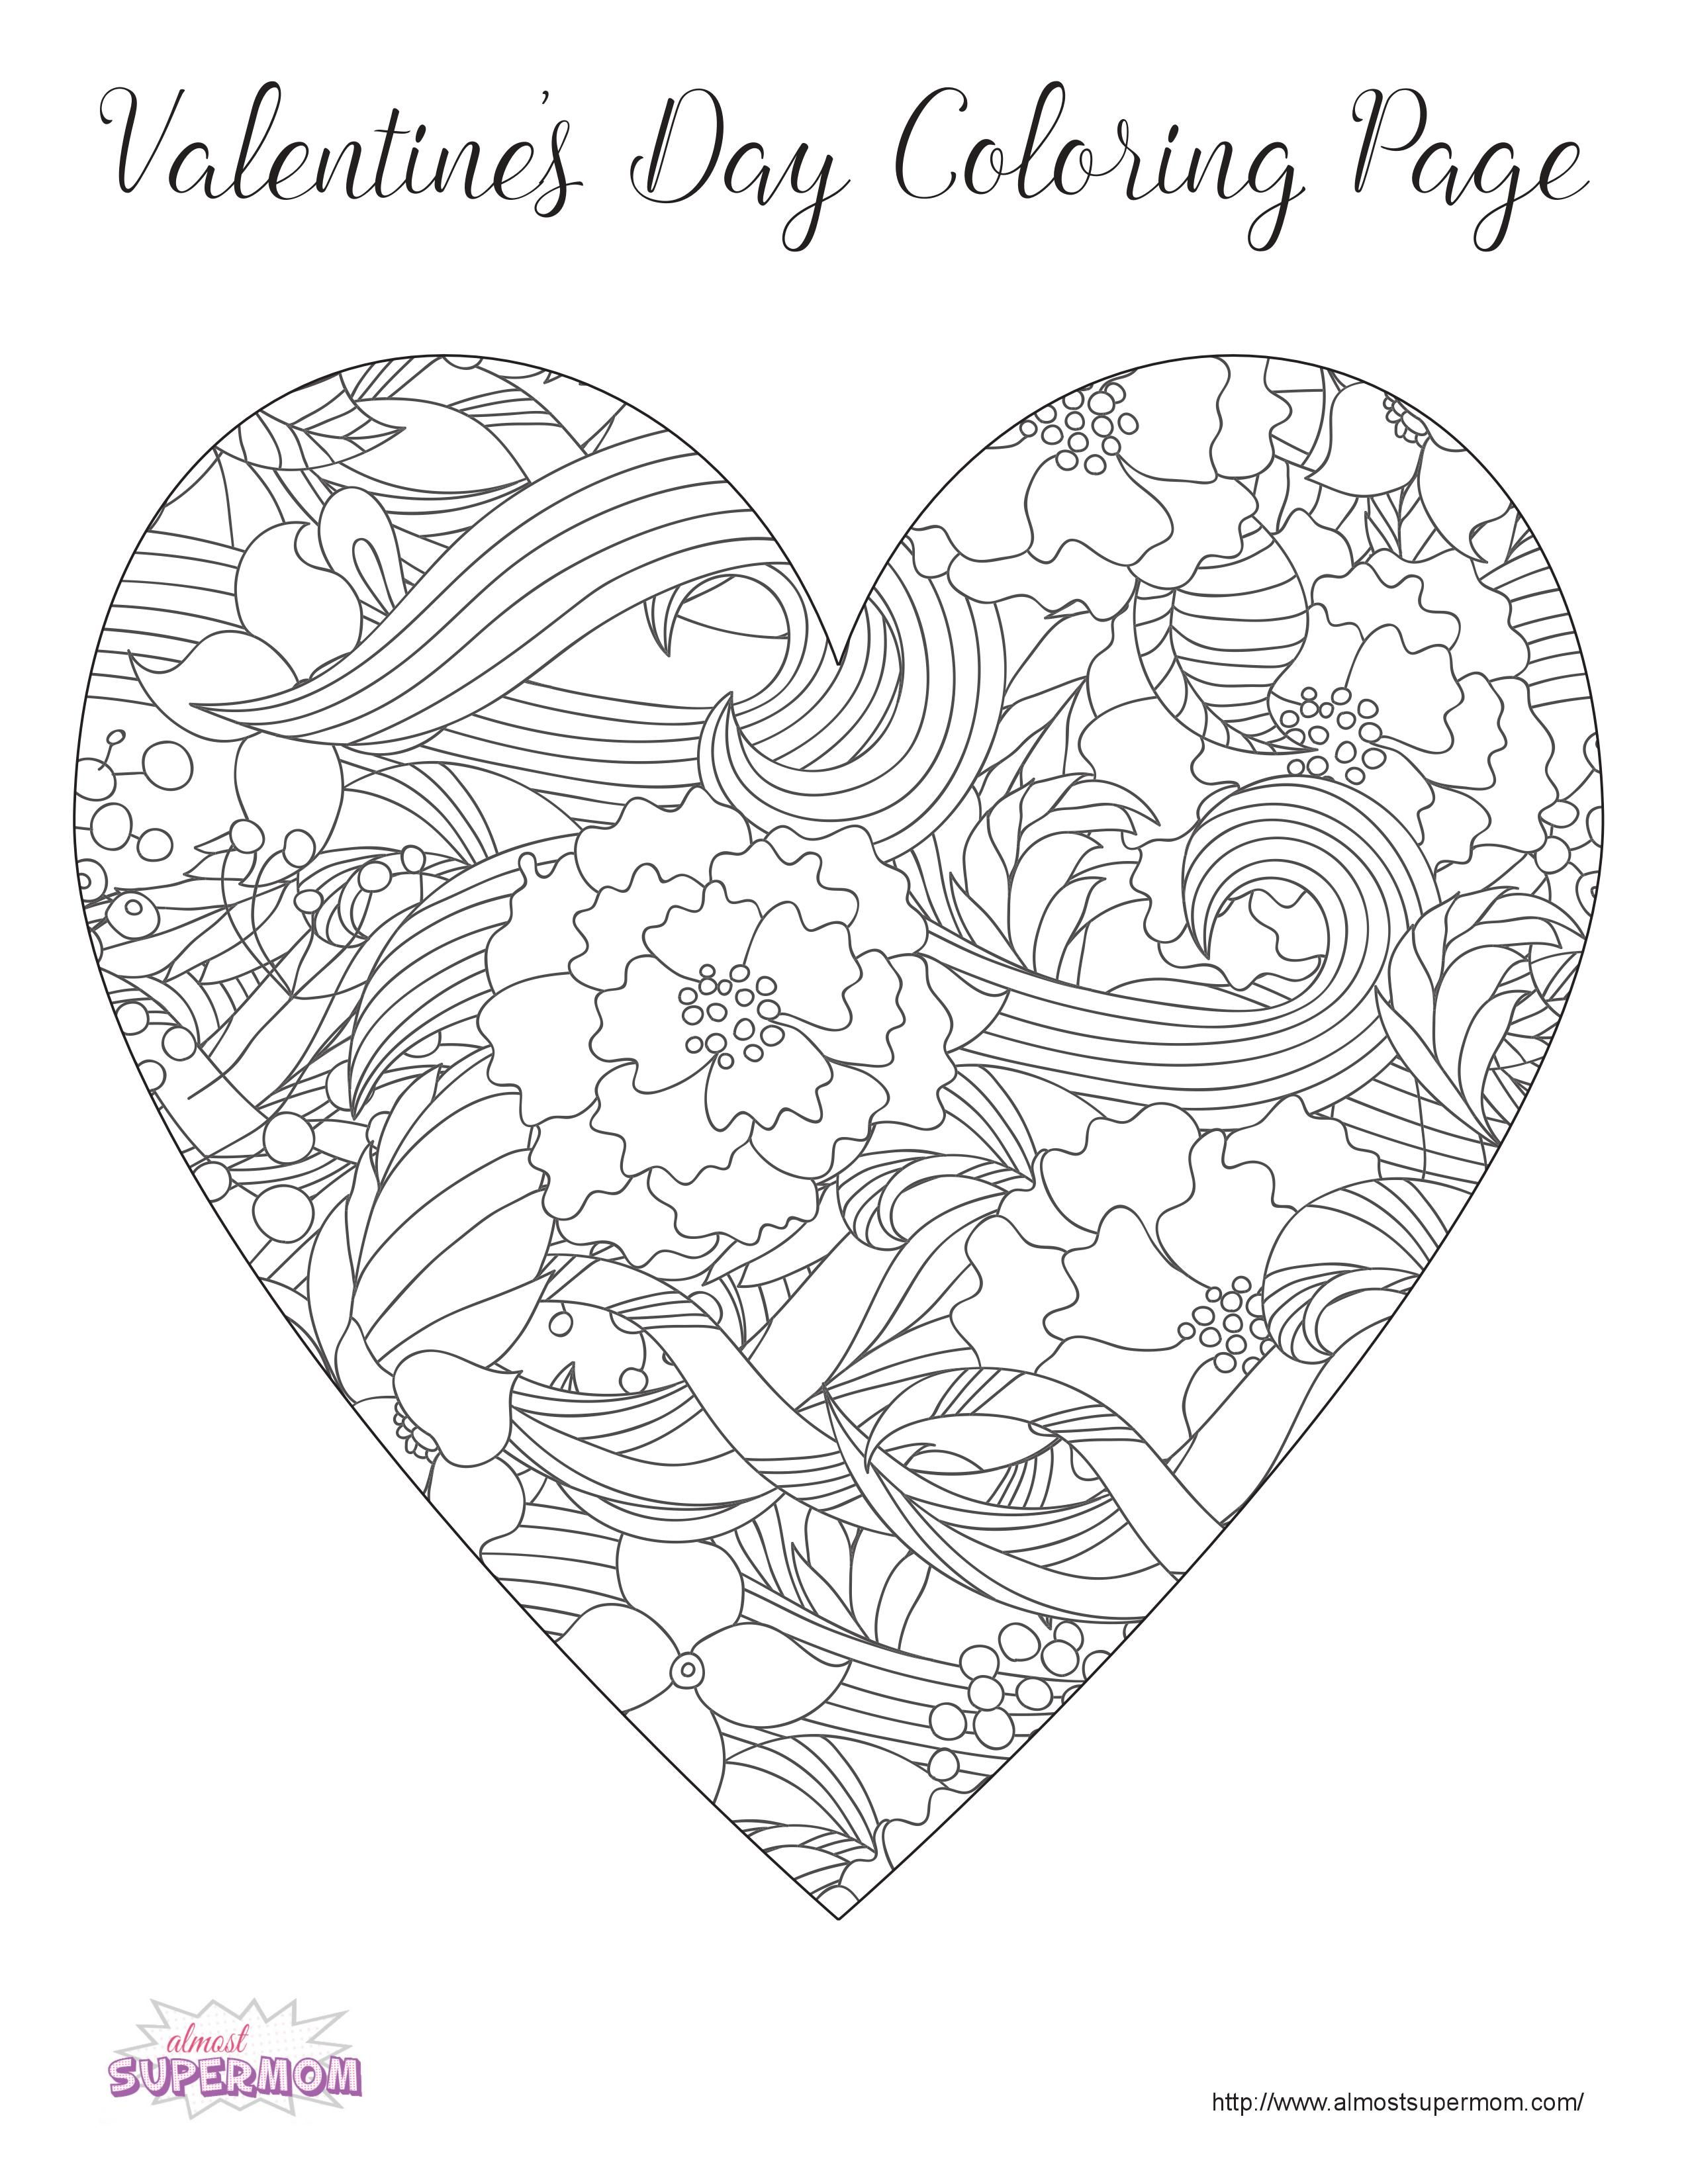 FREE Valentine 39 s Day Coloring Pages